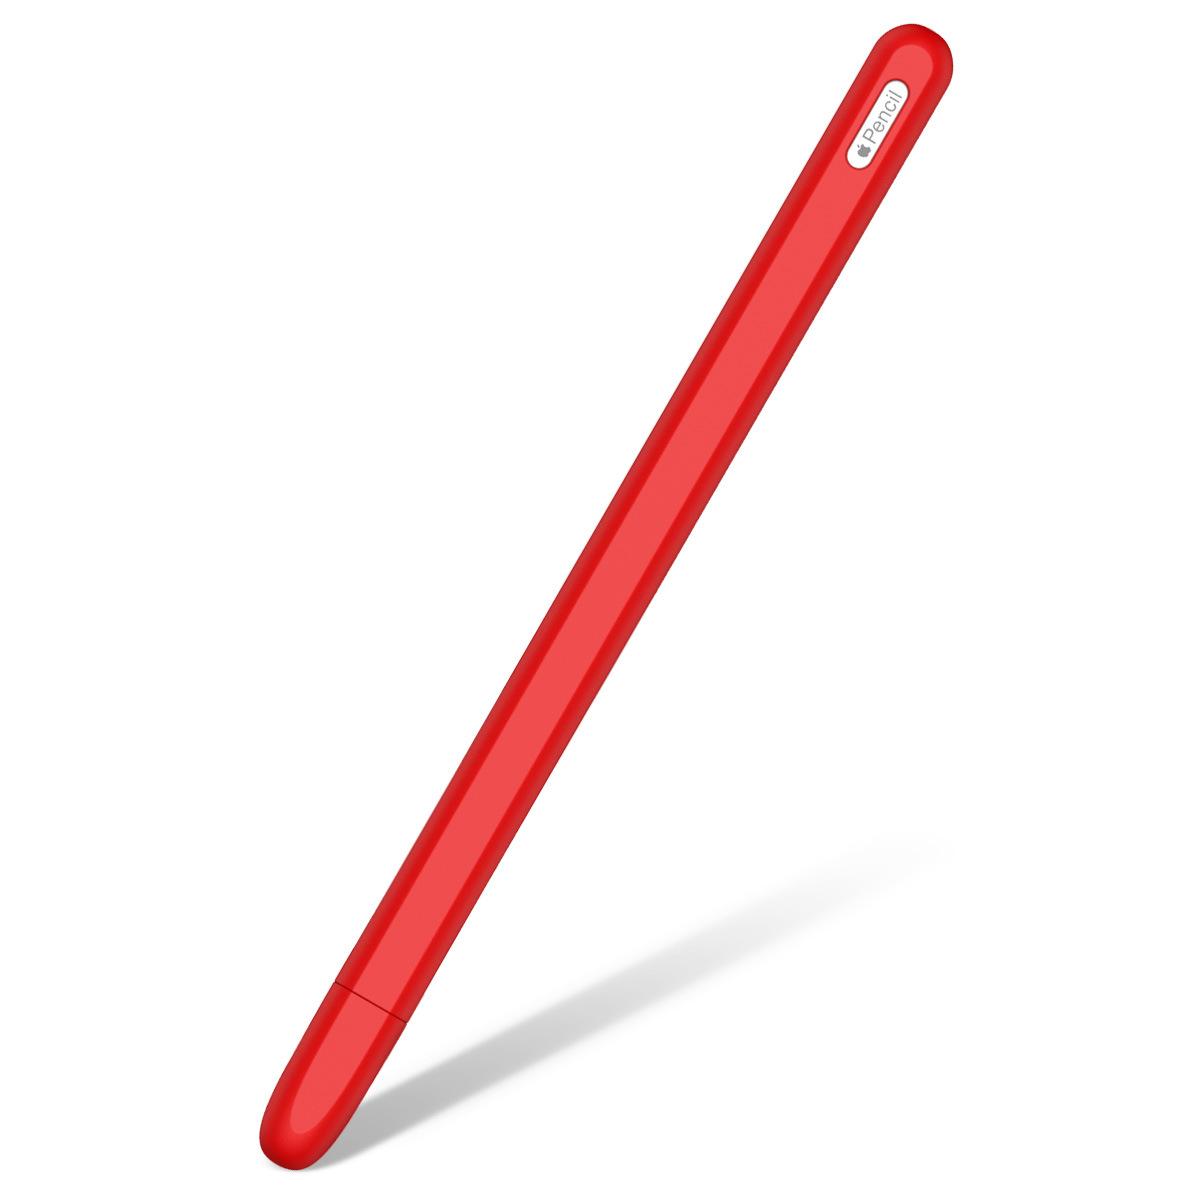 Silicone Case For Apple Pencil 2 Cradle Stand Holder For iPad Pro Stylus Pen Protective Cover red